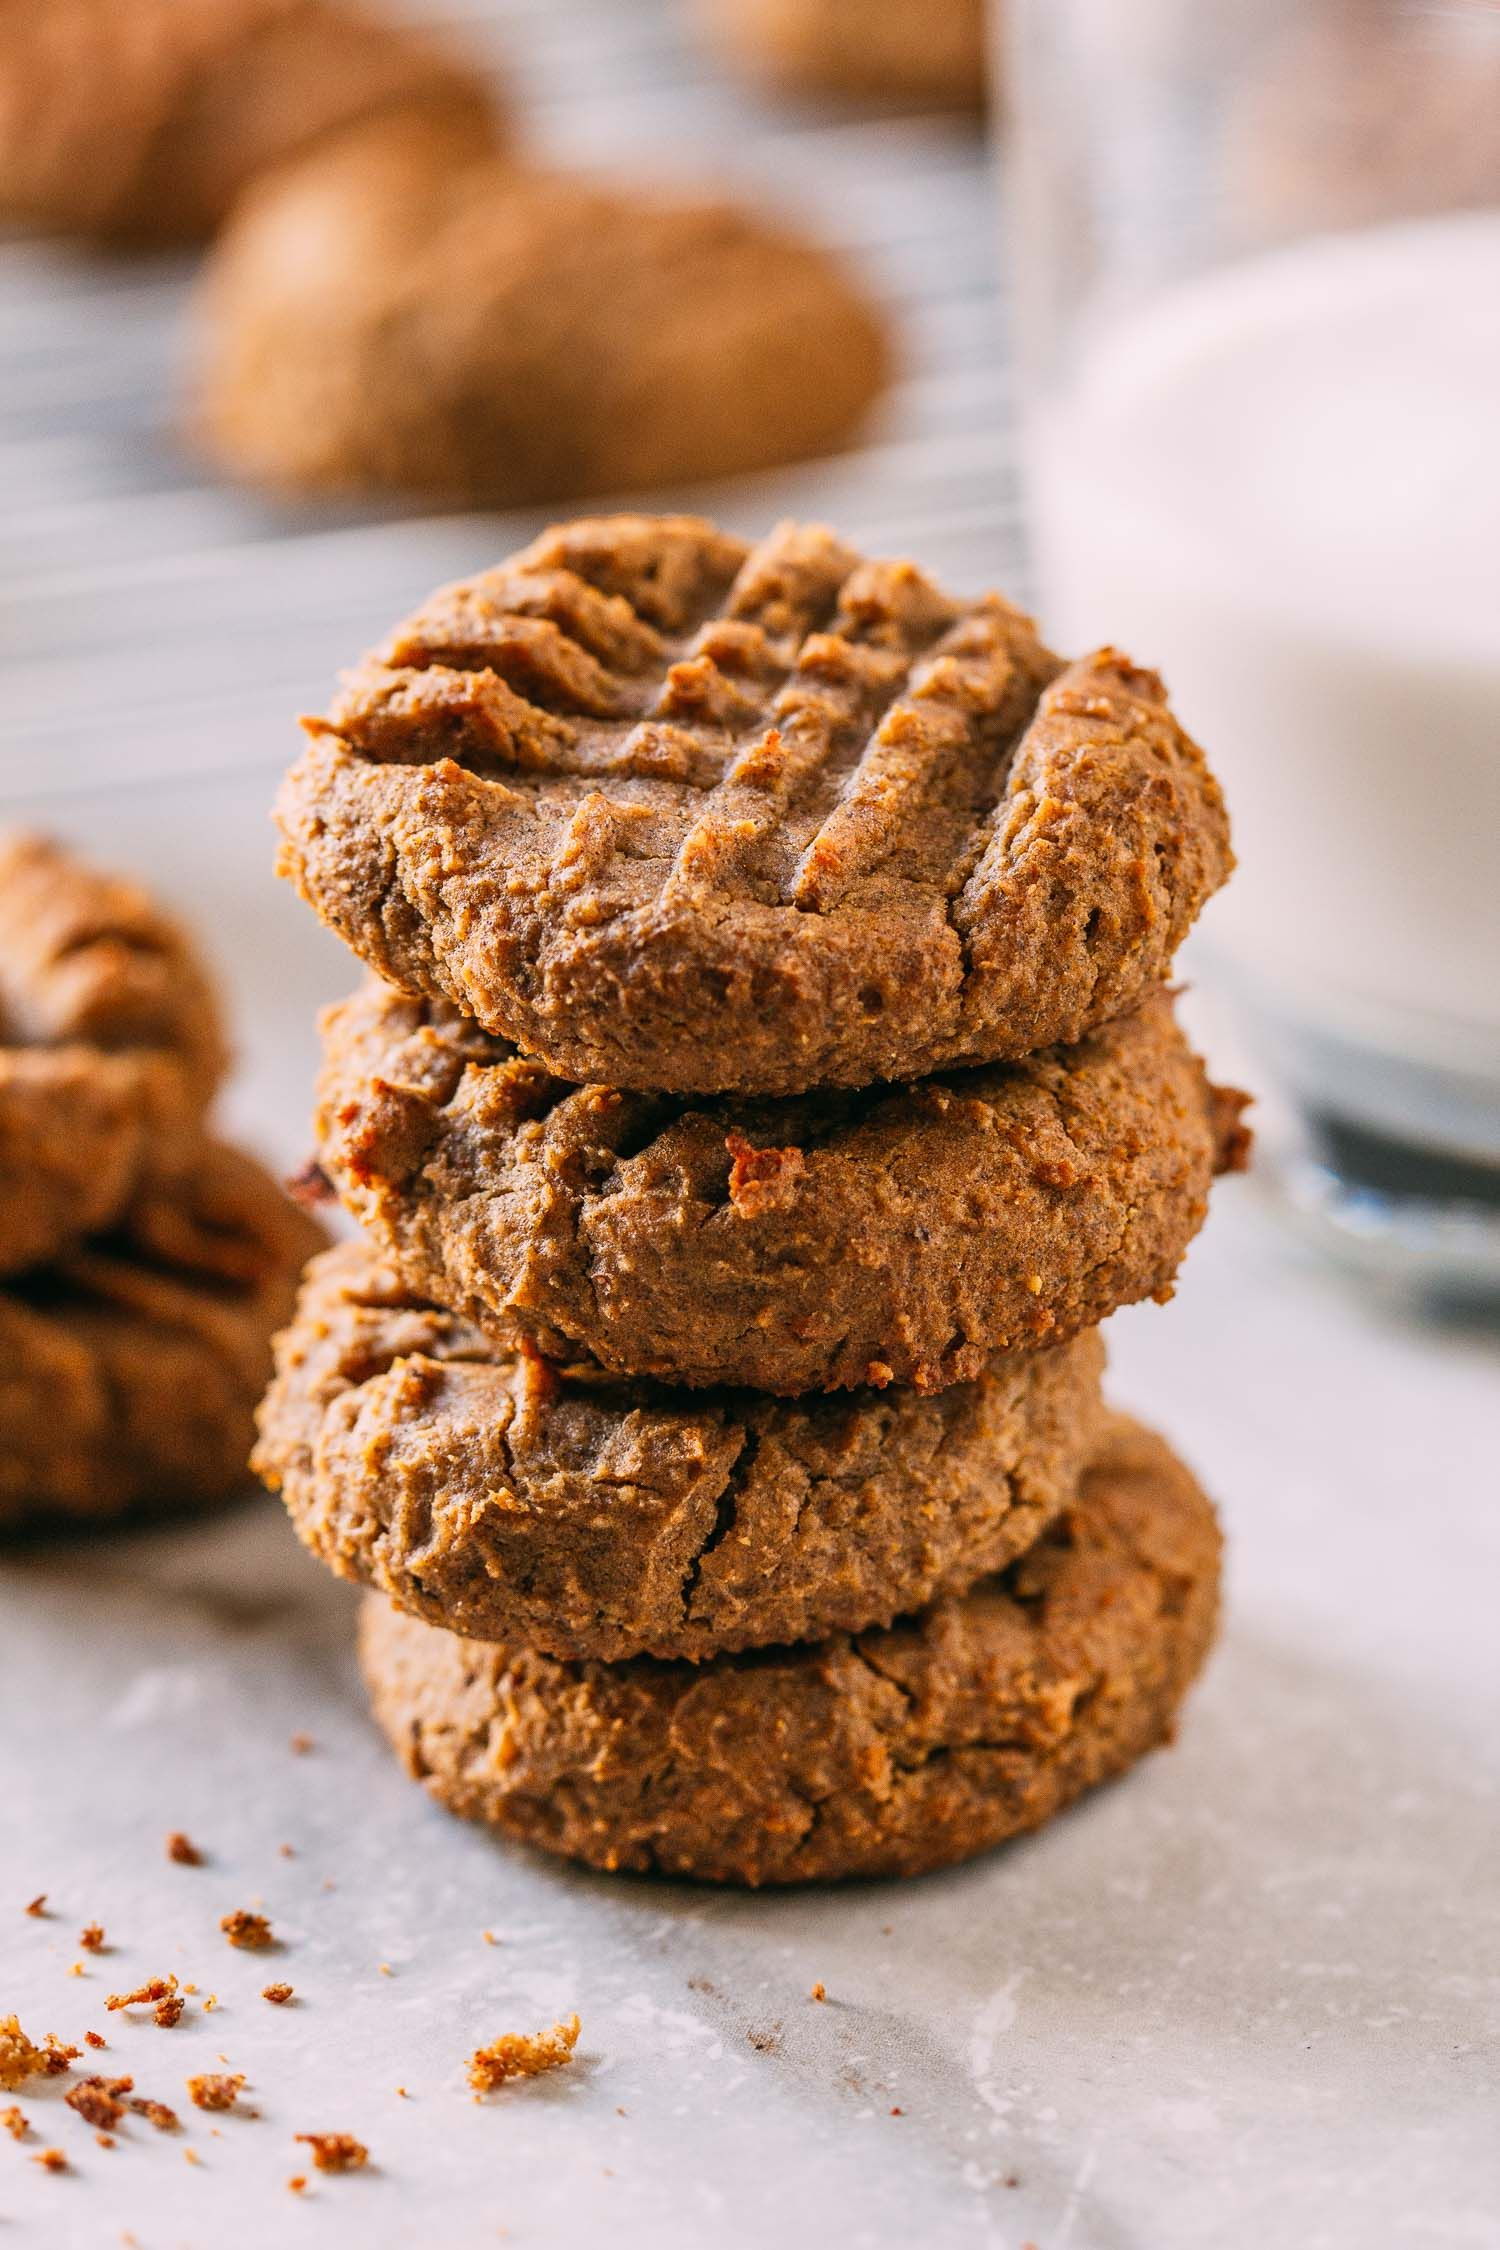 20 Minute Peanut Butter Chickpea Cookies Gluten Free